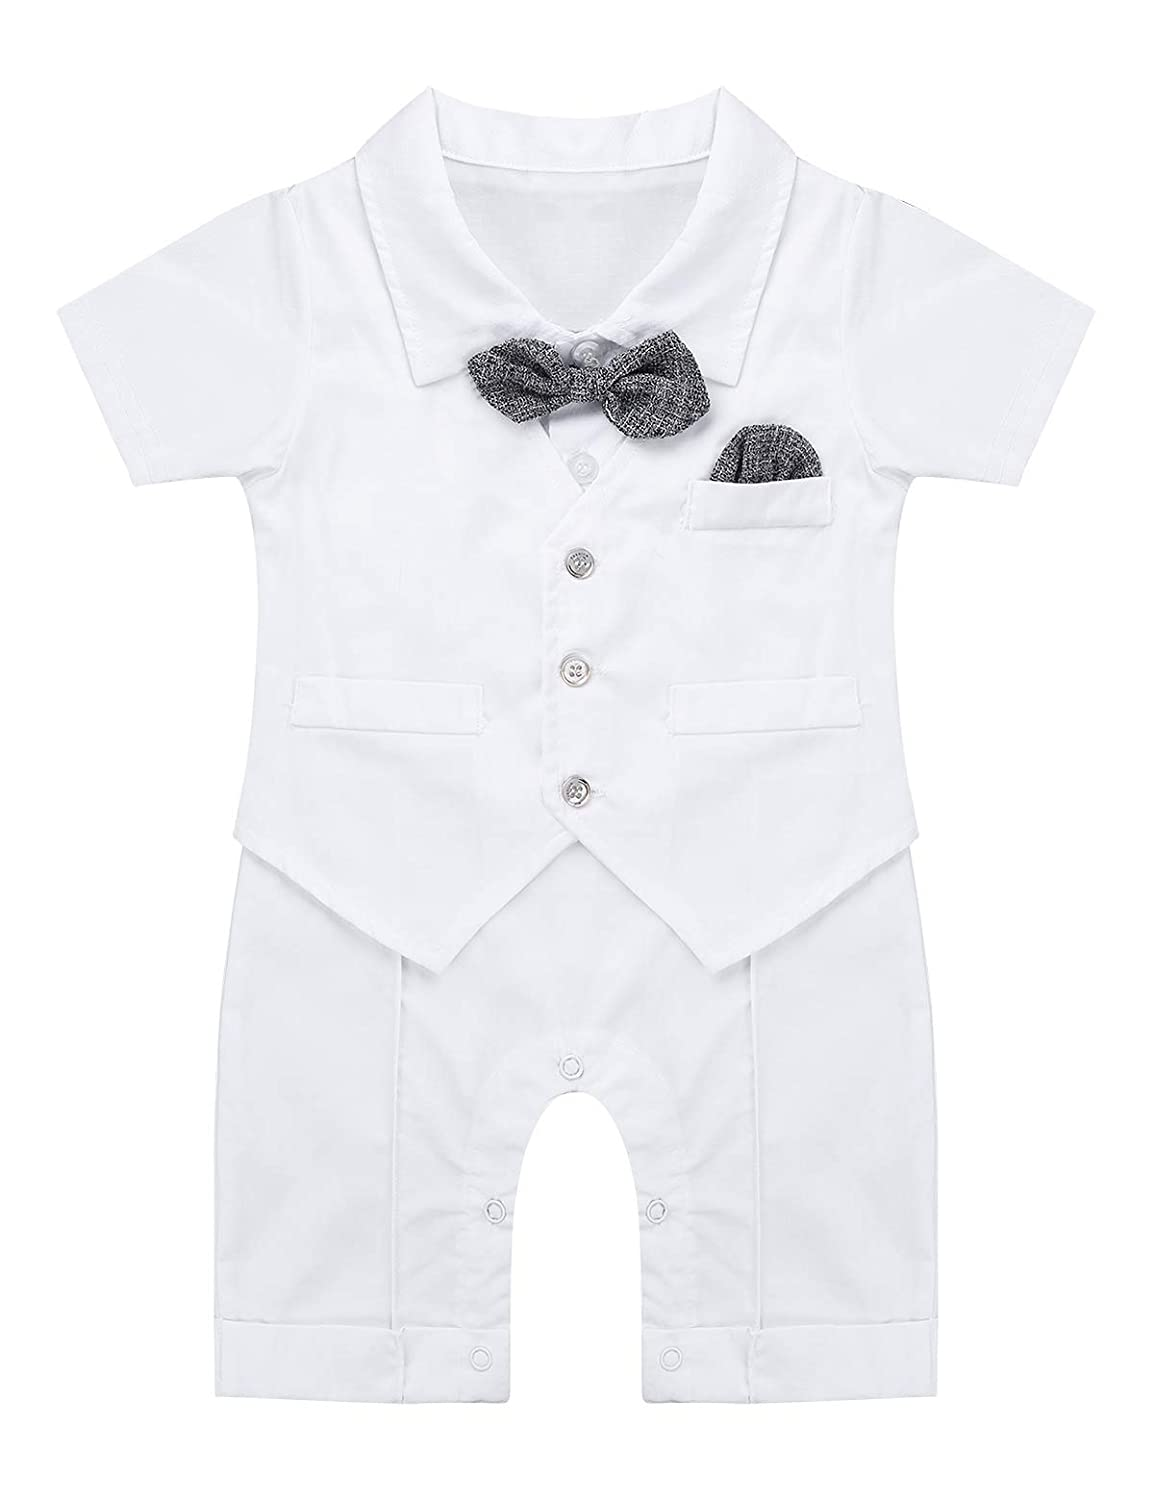 dPois Infant Baby Boys One-Piece Short Sleeves Gentleman Bowtie Romper Jumpsuit Birthday Photography Prop Outfits